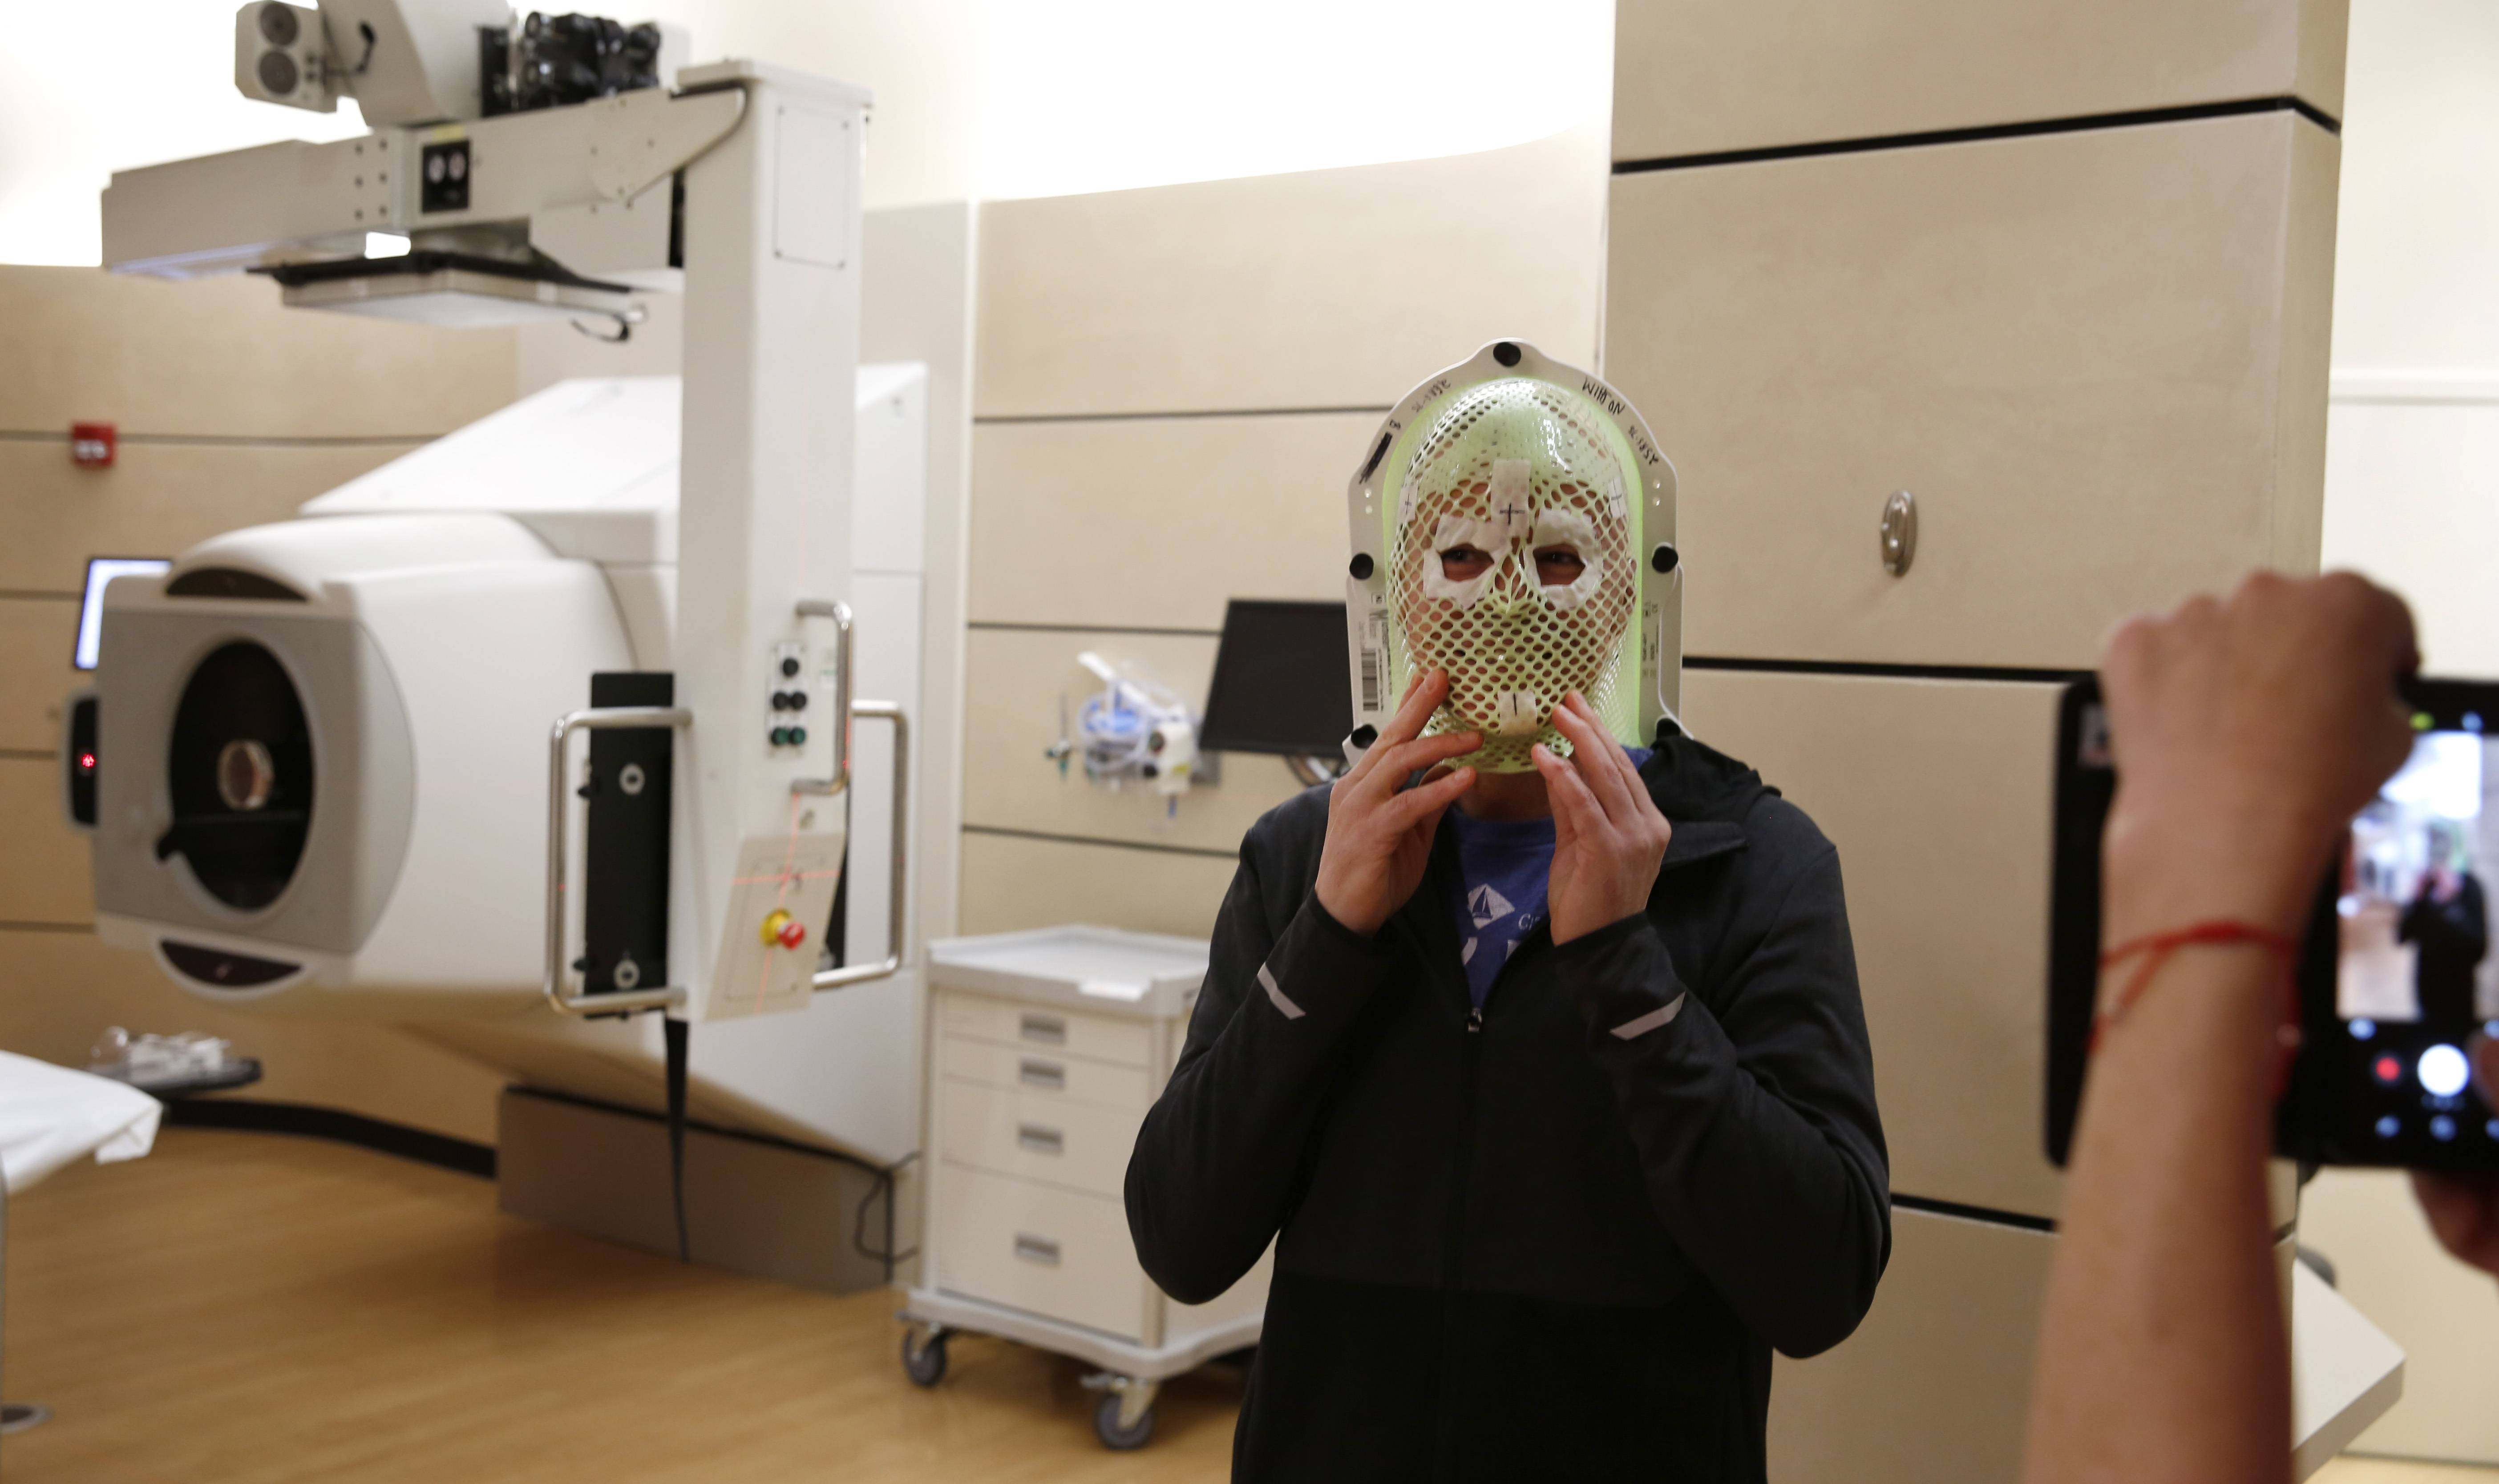 Dale Newman displays a protective face shield he wore while receiving proton therapy to treat his brain tumor.